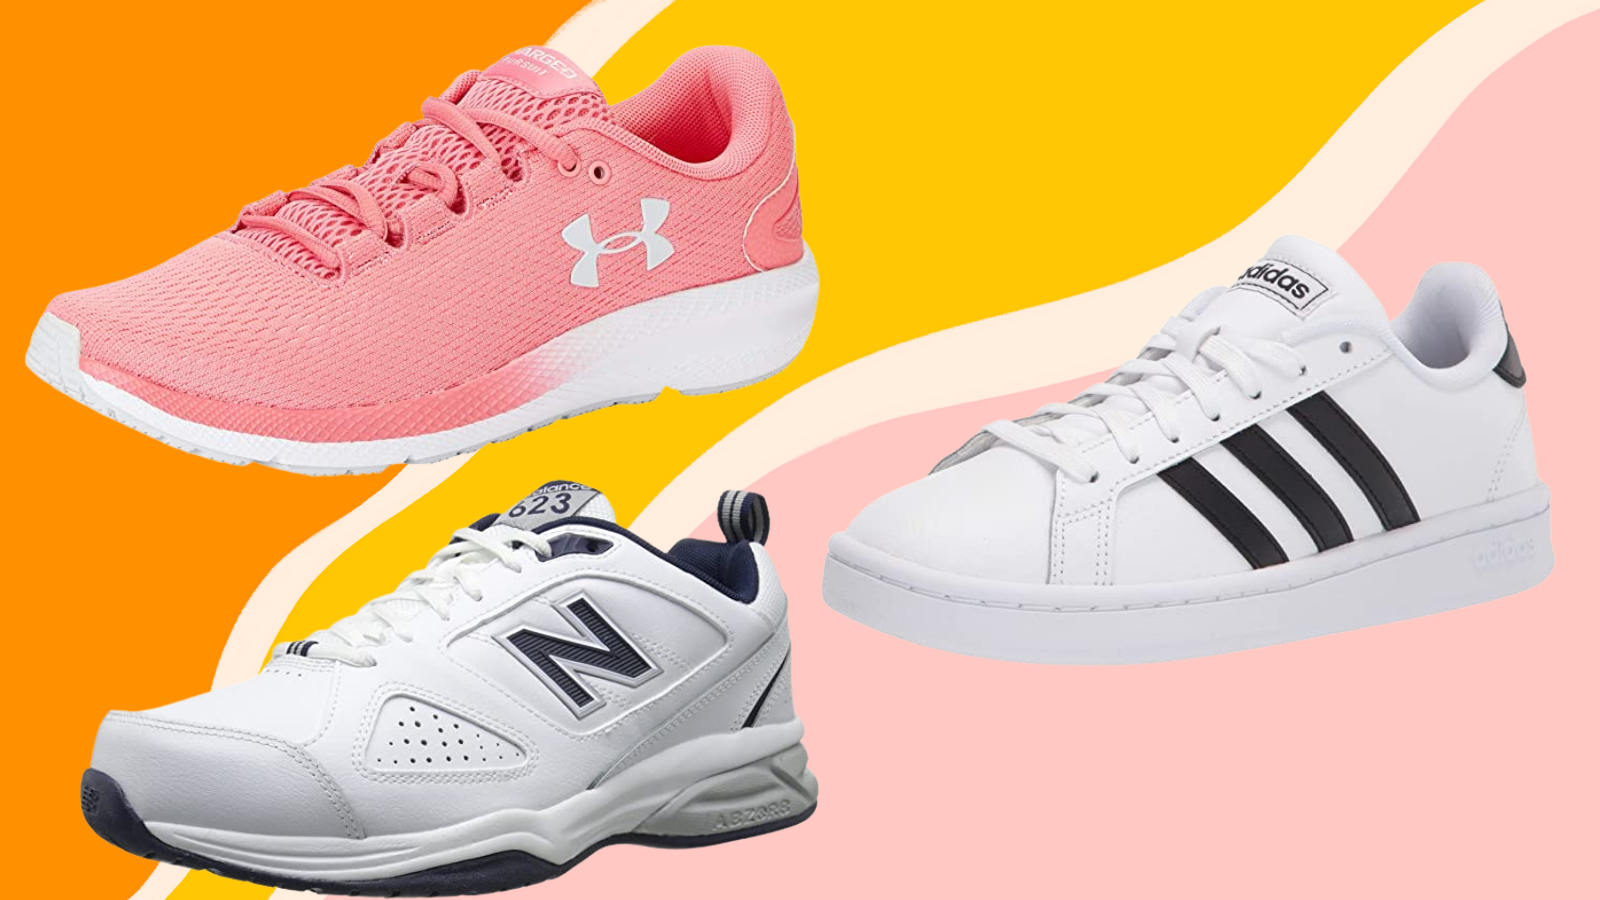 Prime Day 2021: New Balance, Adidas and more great sneaker deals